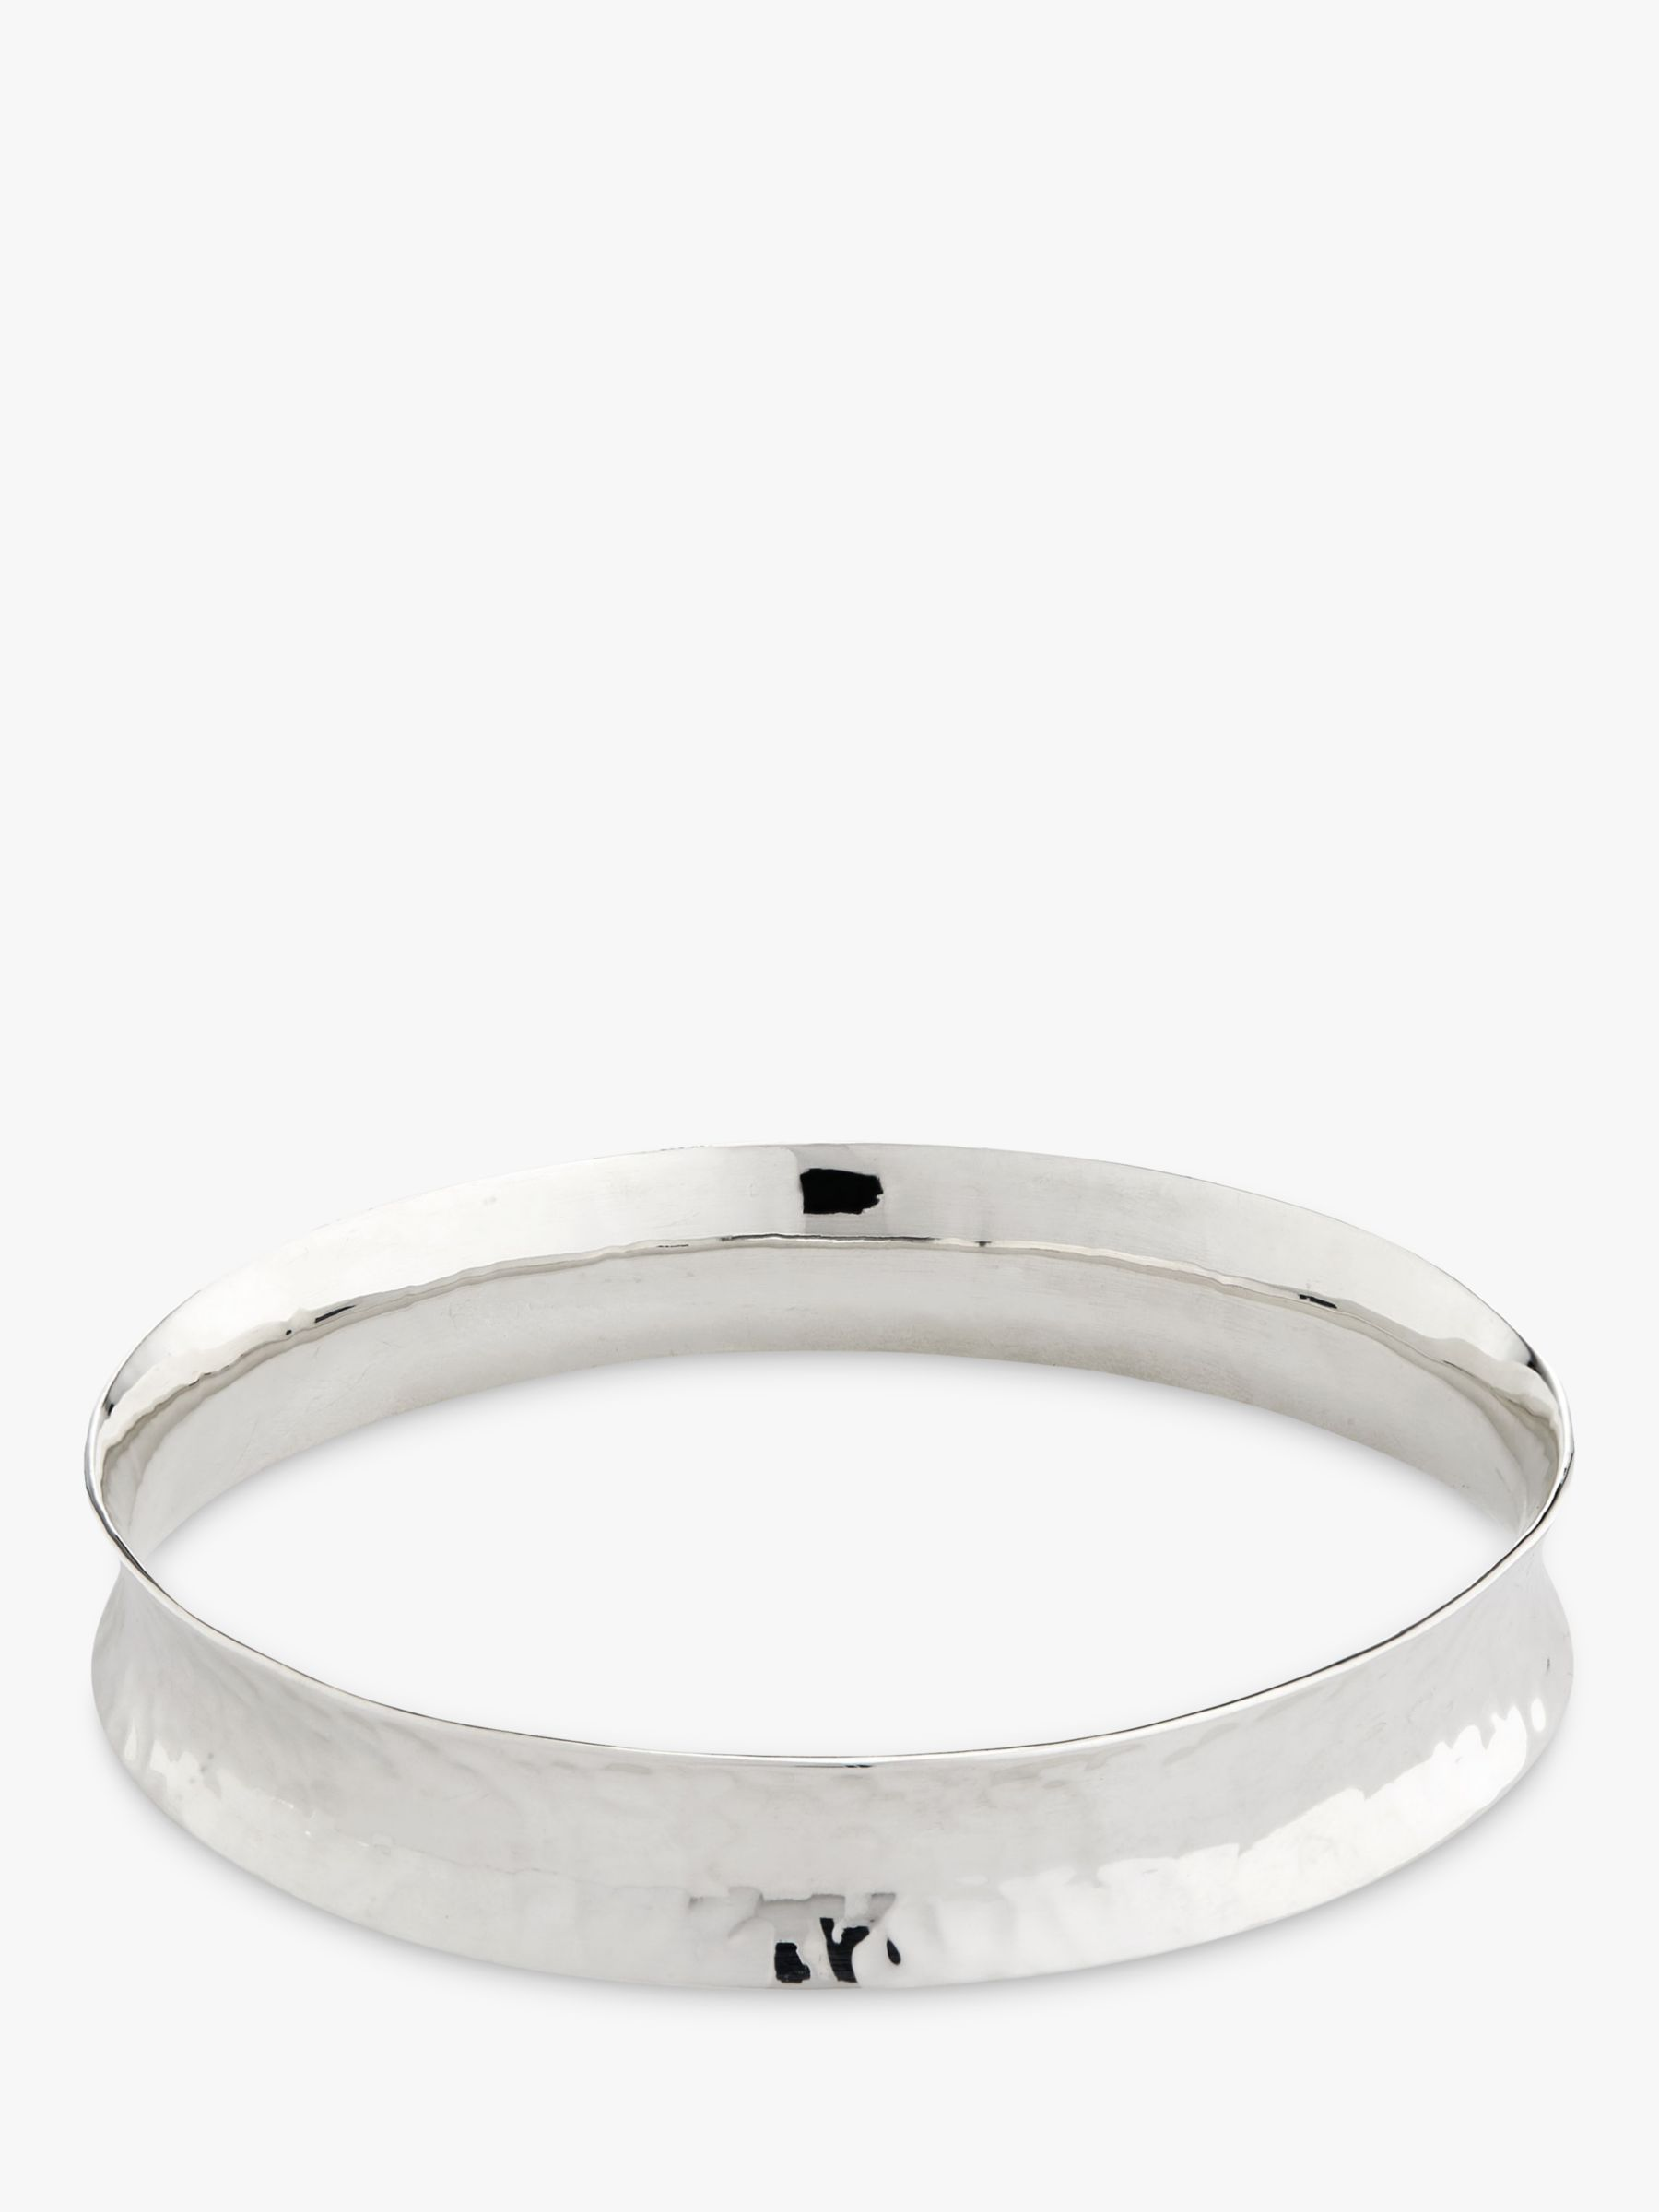 Andea Andea Sterling Silver Hammered Concave Bangle, Silver